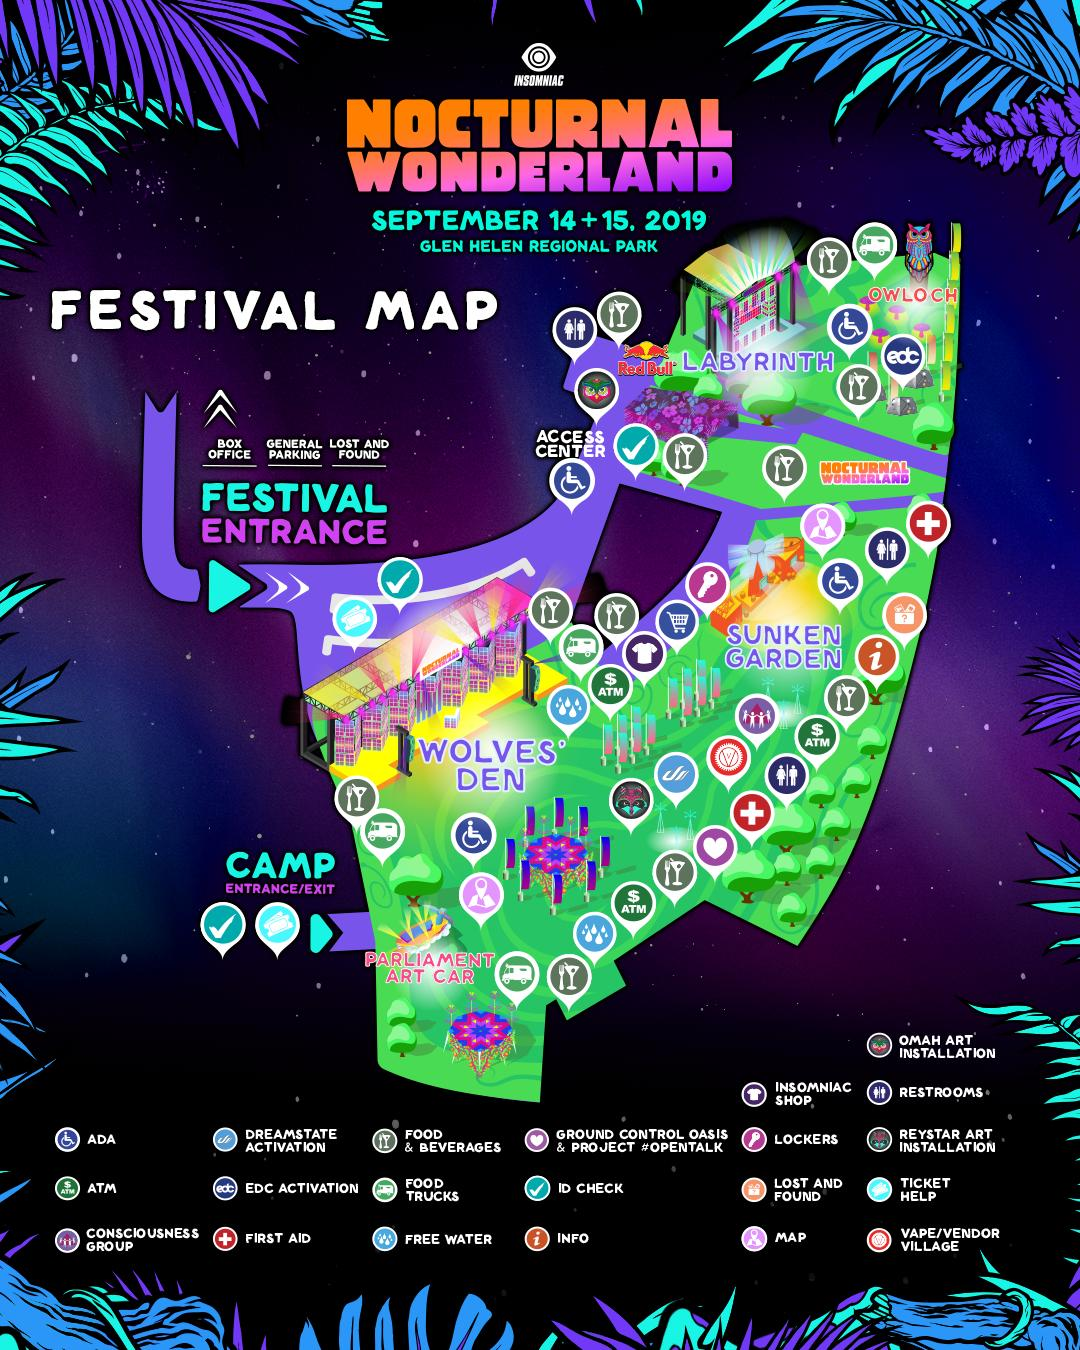 Nocturnal Wonderland map 2020